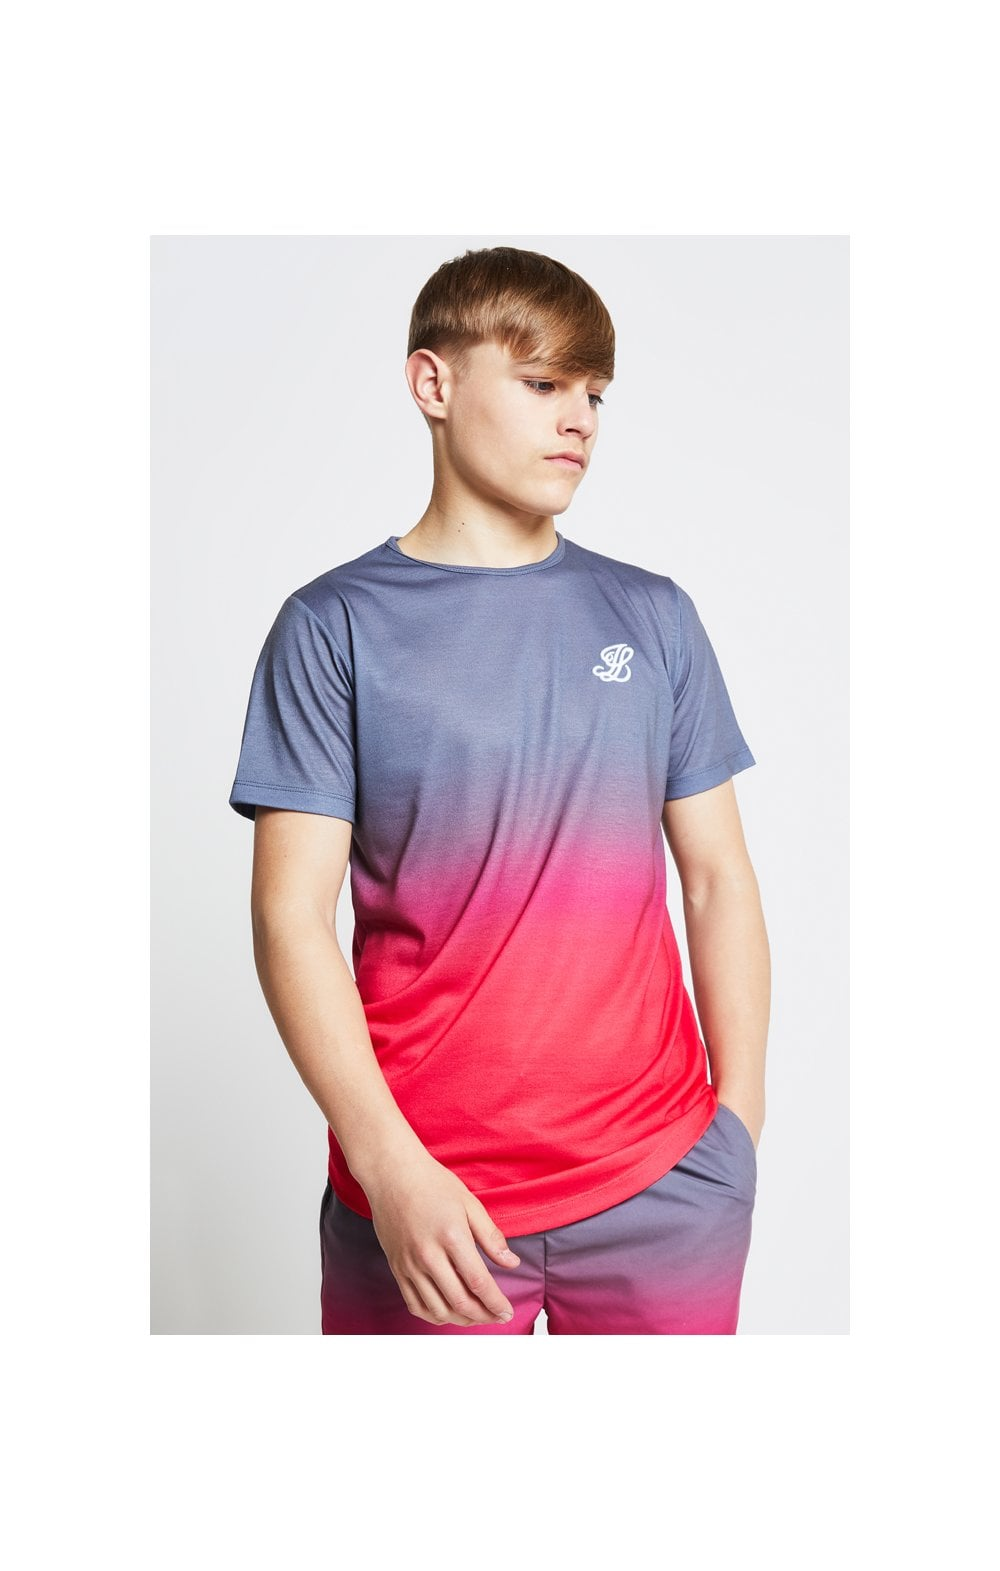 Illusive London Fade Tee - Grey & Pink (1)